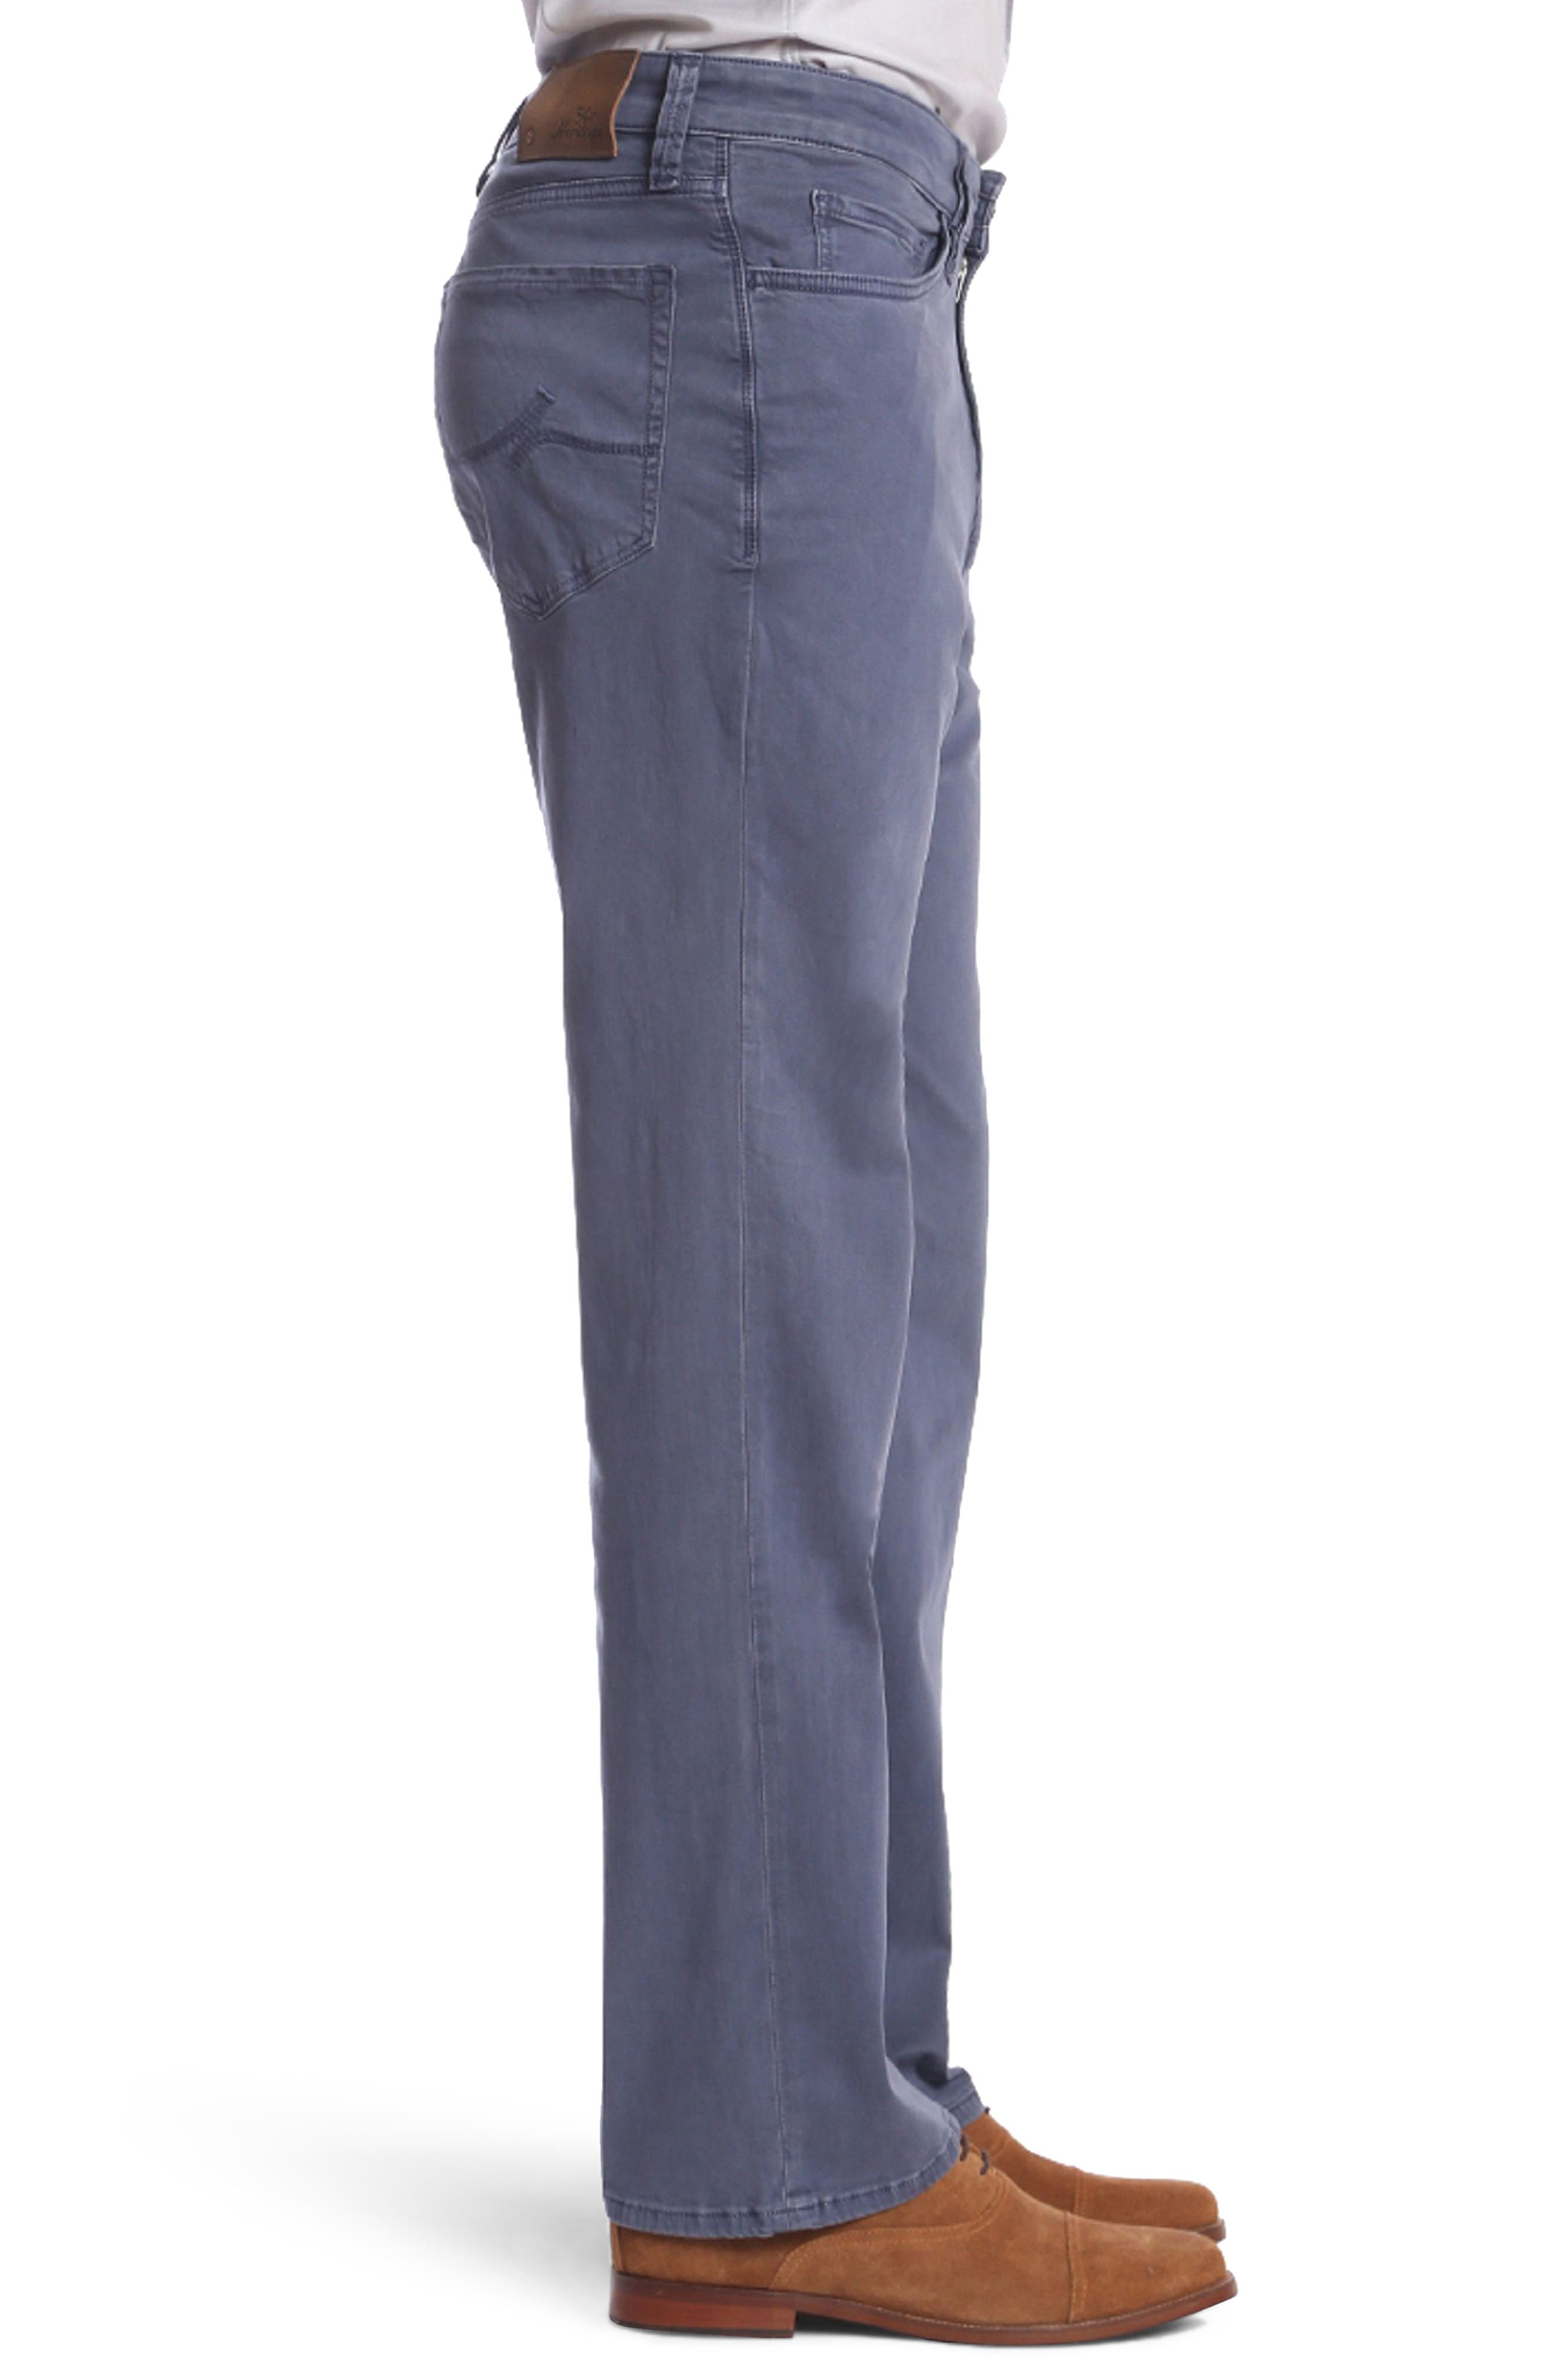 Charisma Relaxed Fit Jeans,                             Alternate thumbnail 3, color,                             450